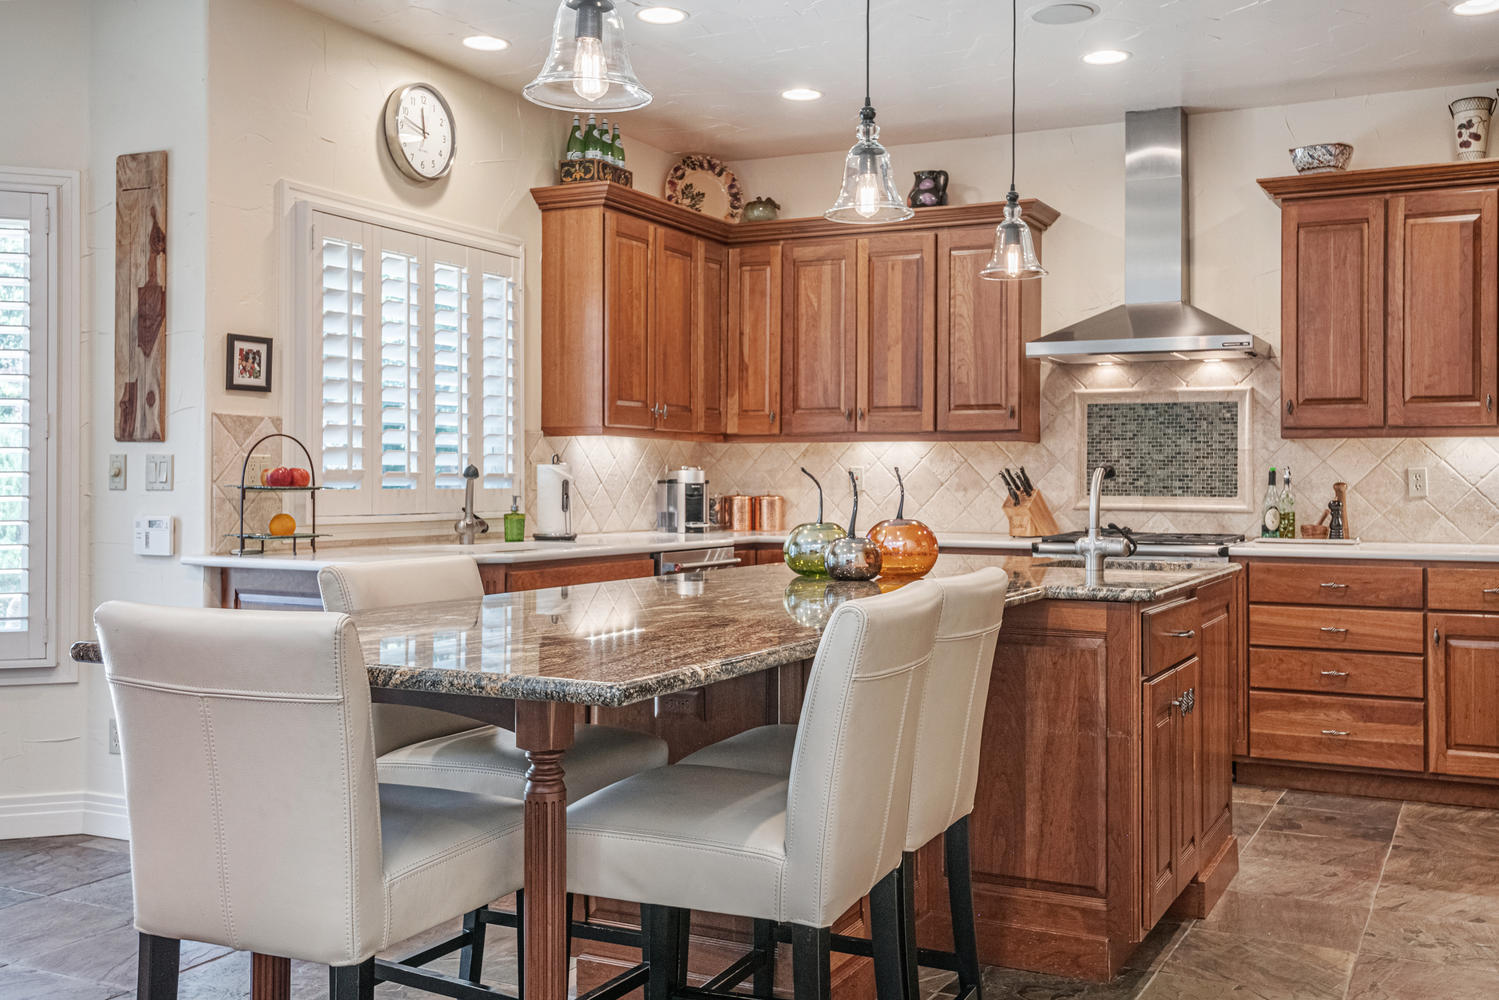 Imagine Yourself in This Wonderful Gourmet Kitchen